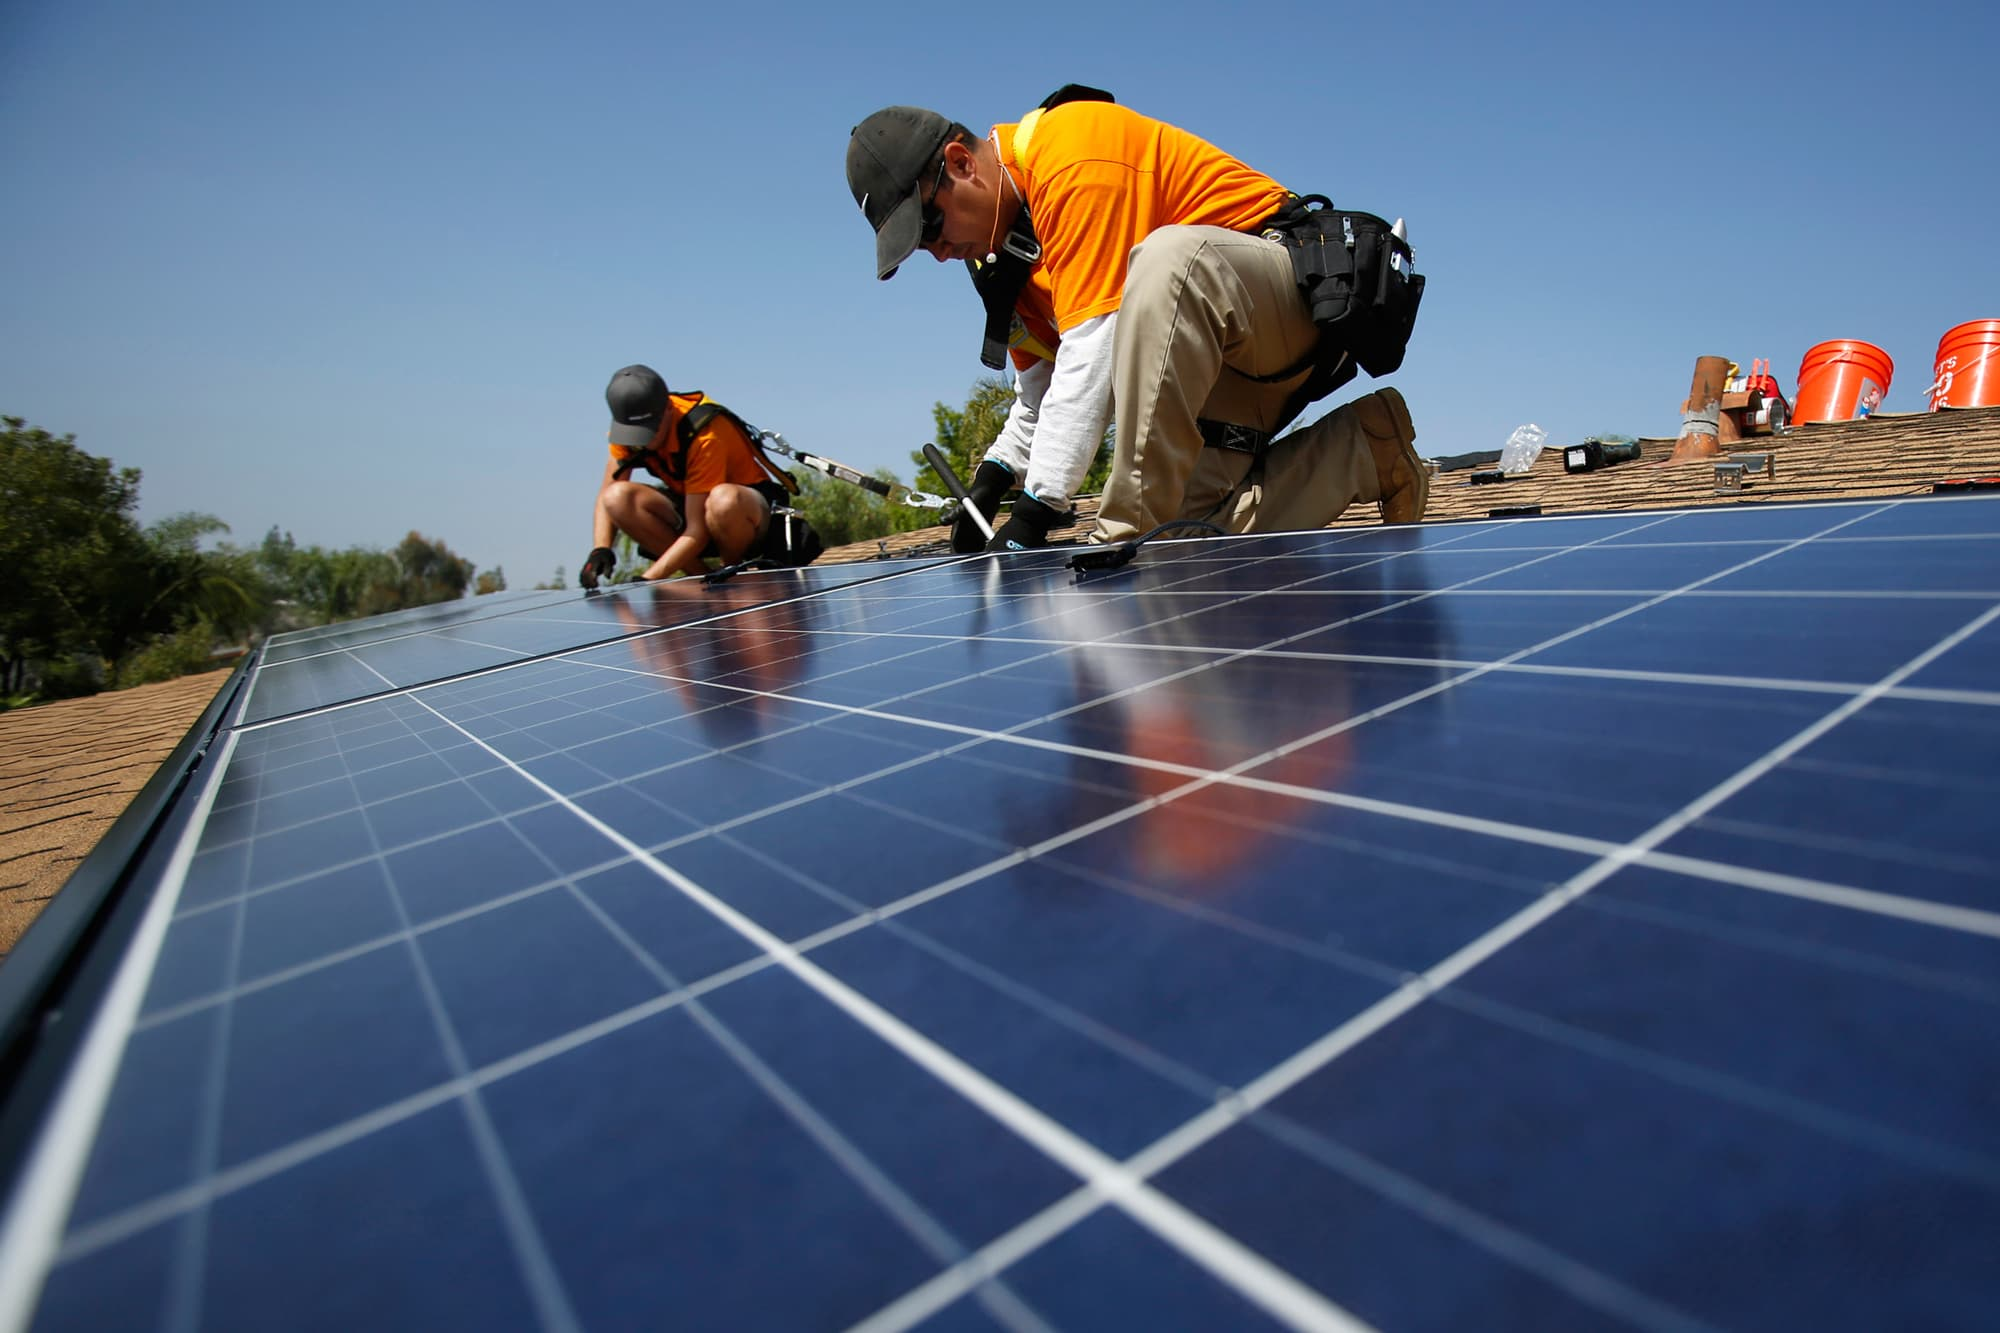 Cost to install solar panels on roof - Cost To Install Solar Panels On Roof 10